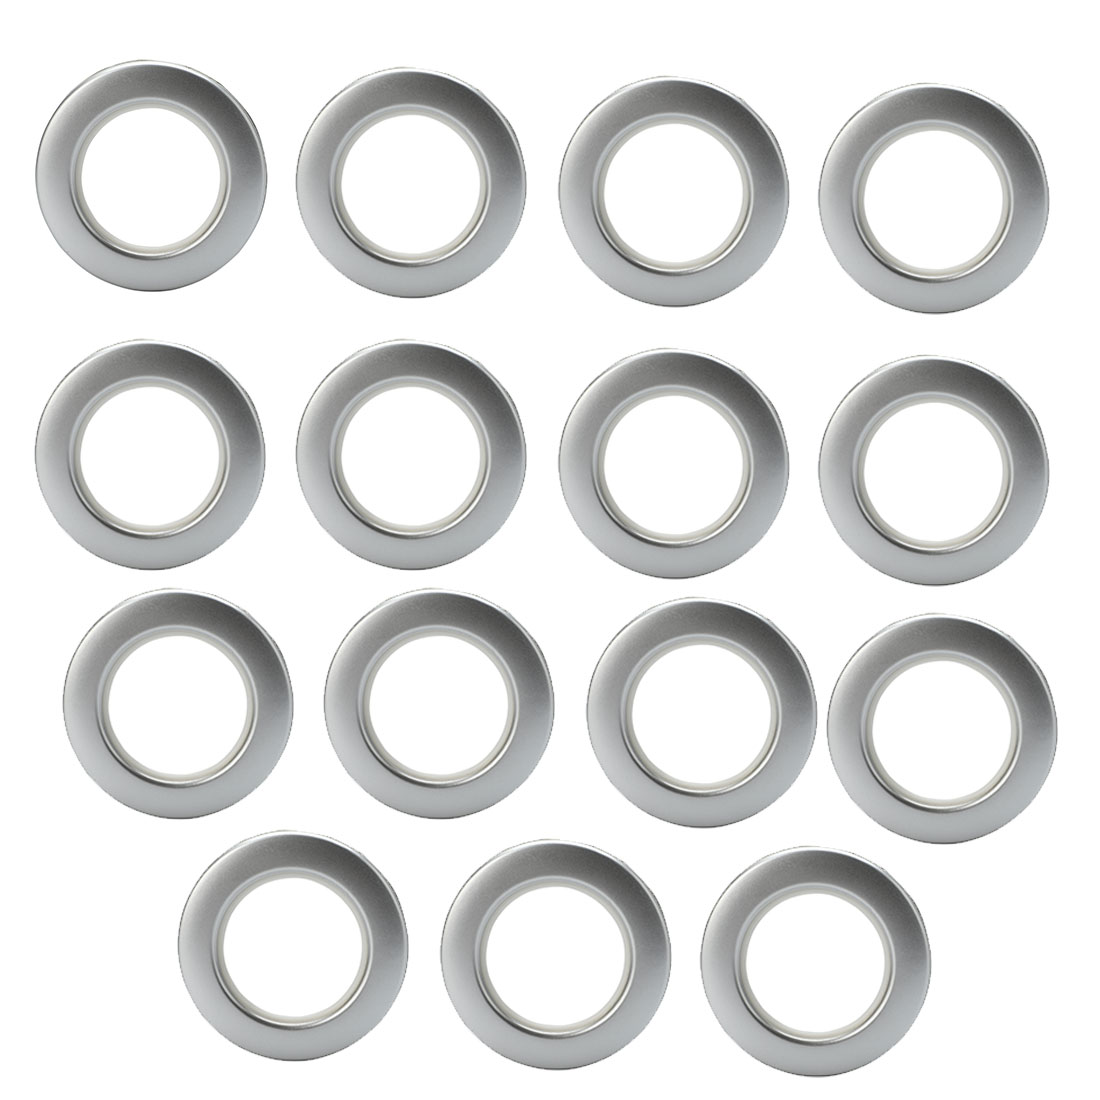 Bathroom Shower Window Curtain Ring Hook Sliding Hanging Hangers Silver Tone 15Pcs